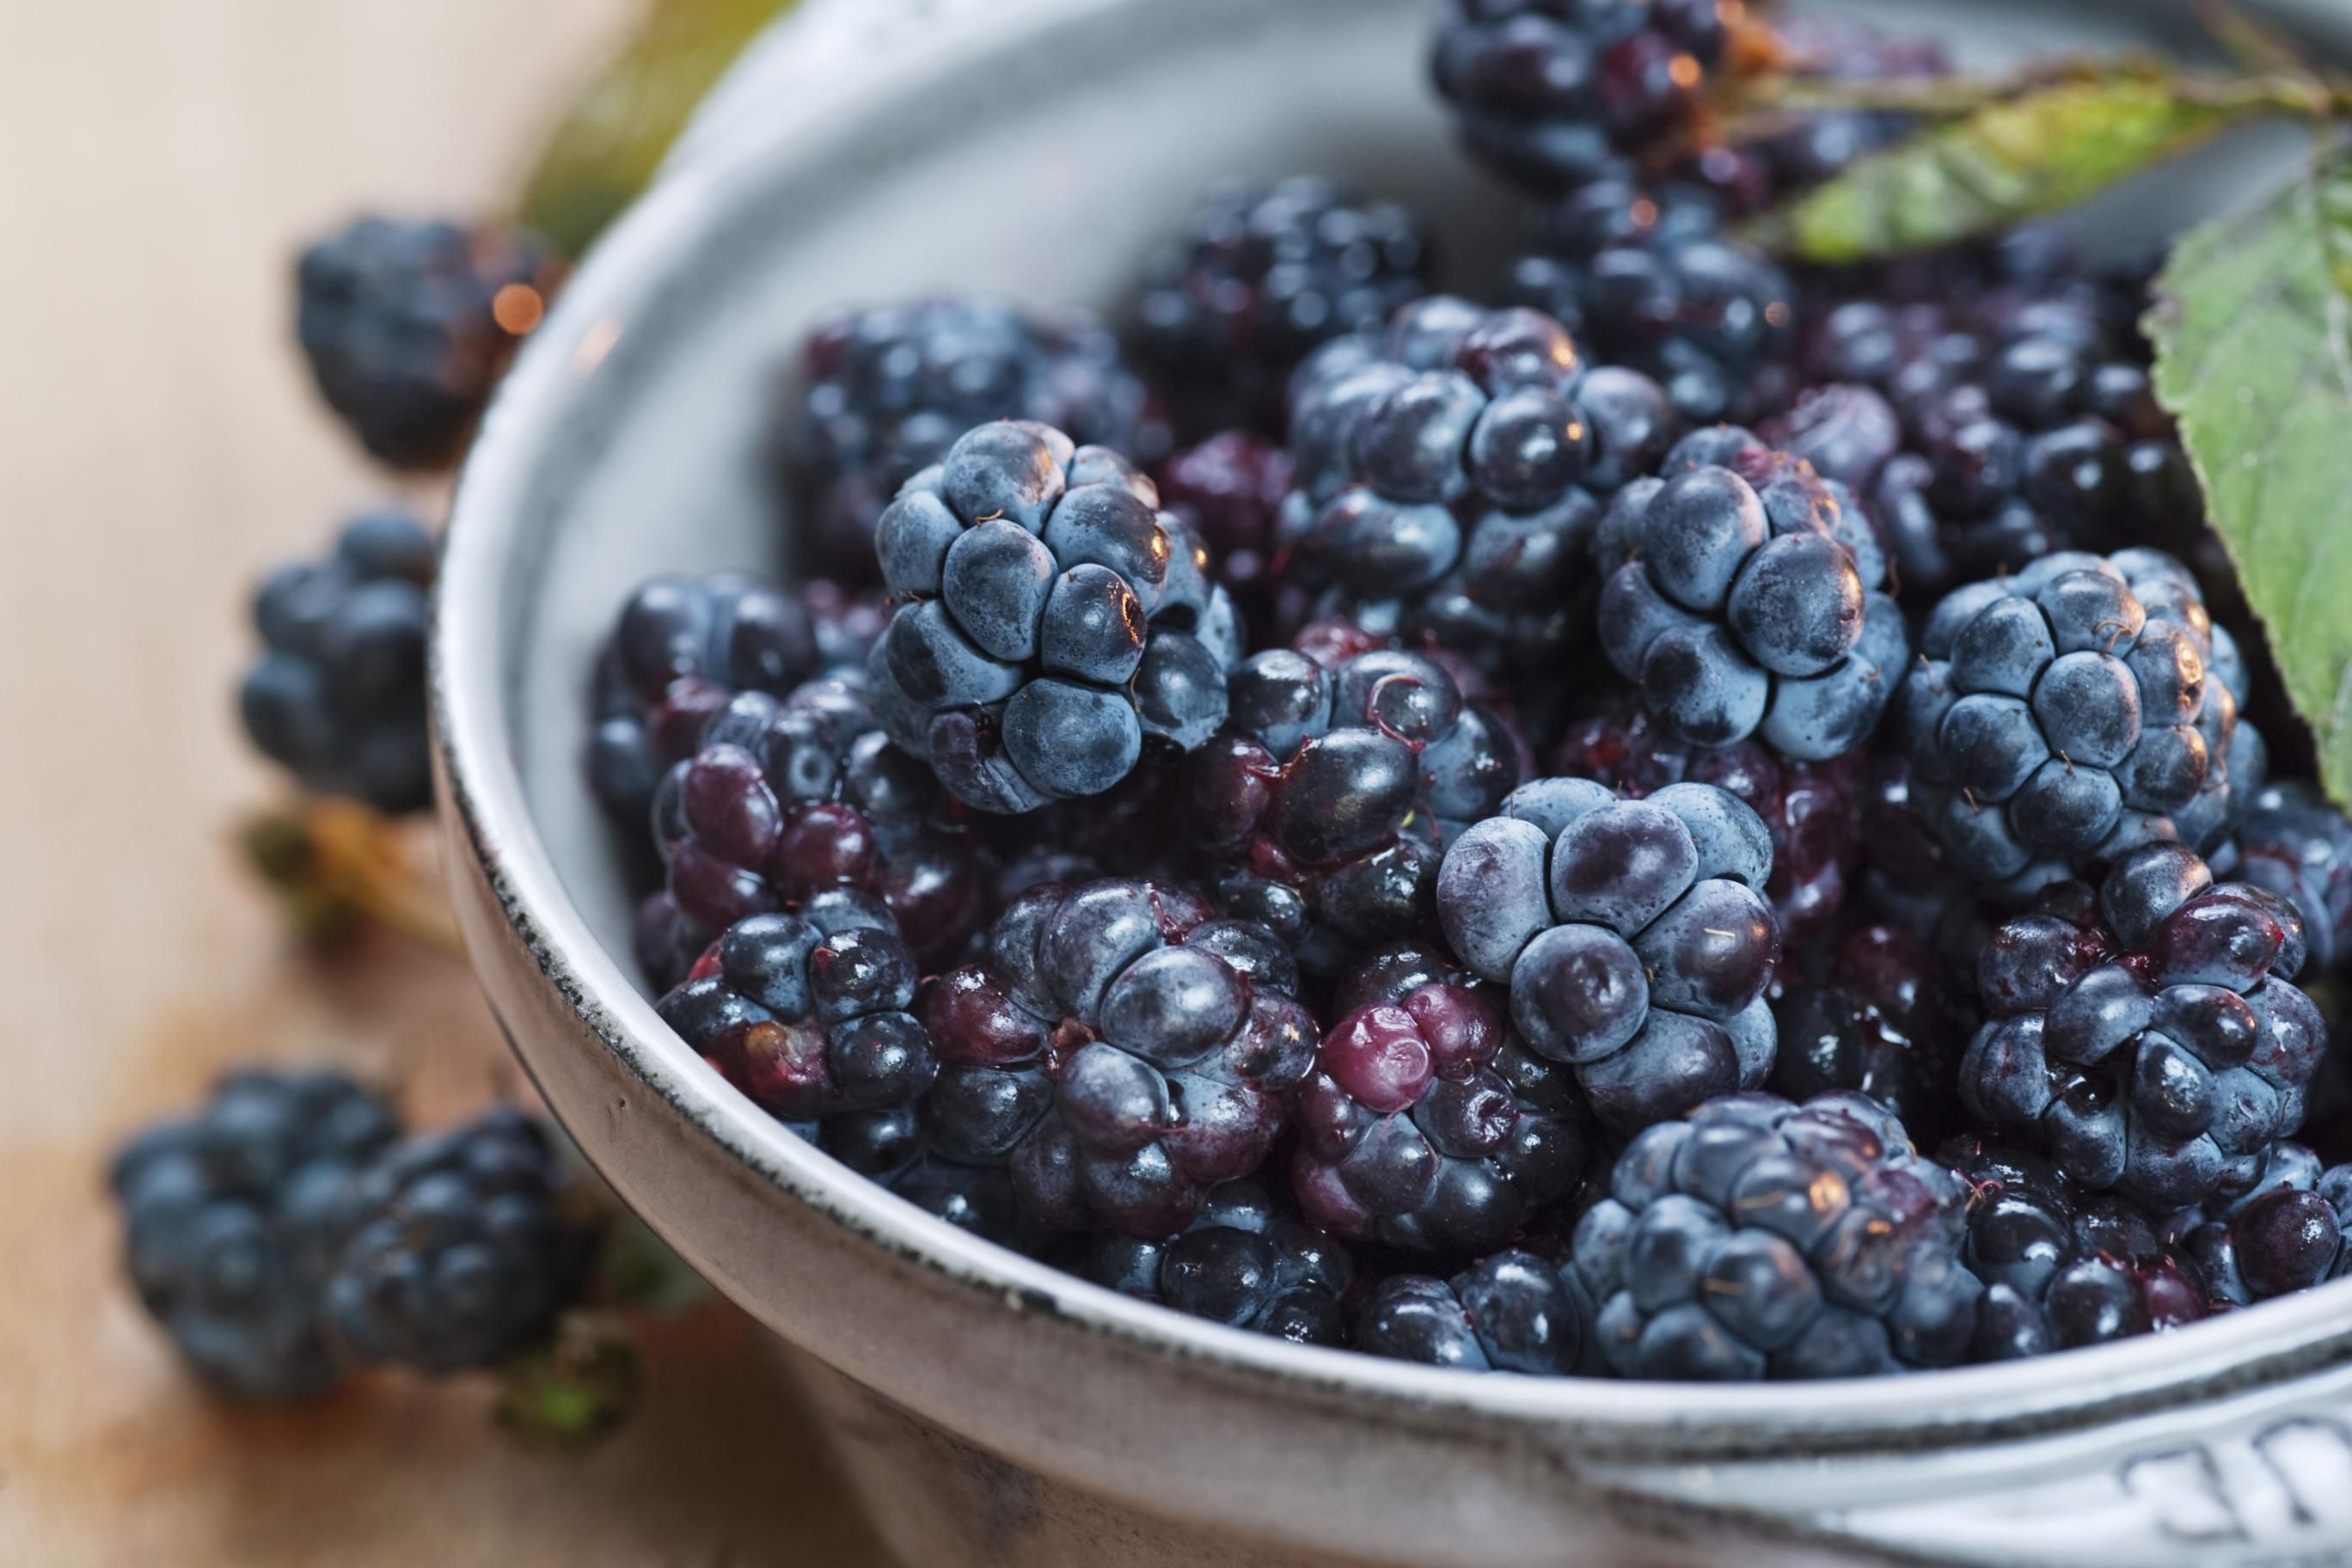 Types Of Berries 9 Juicy Varieties To Look For